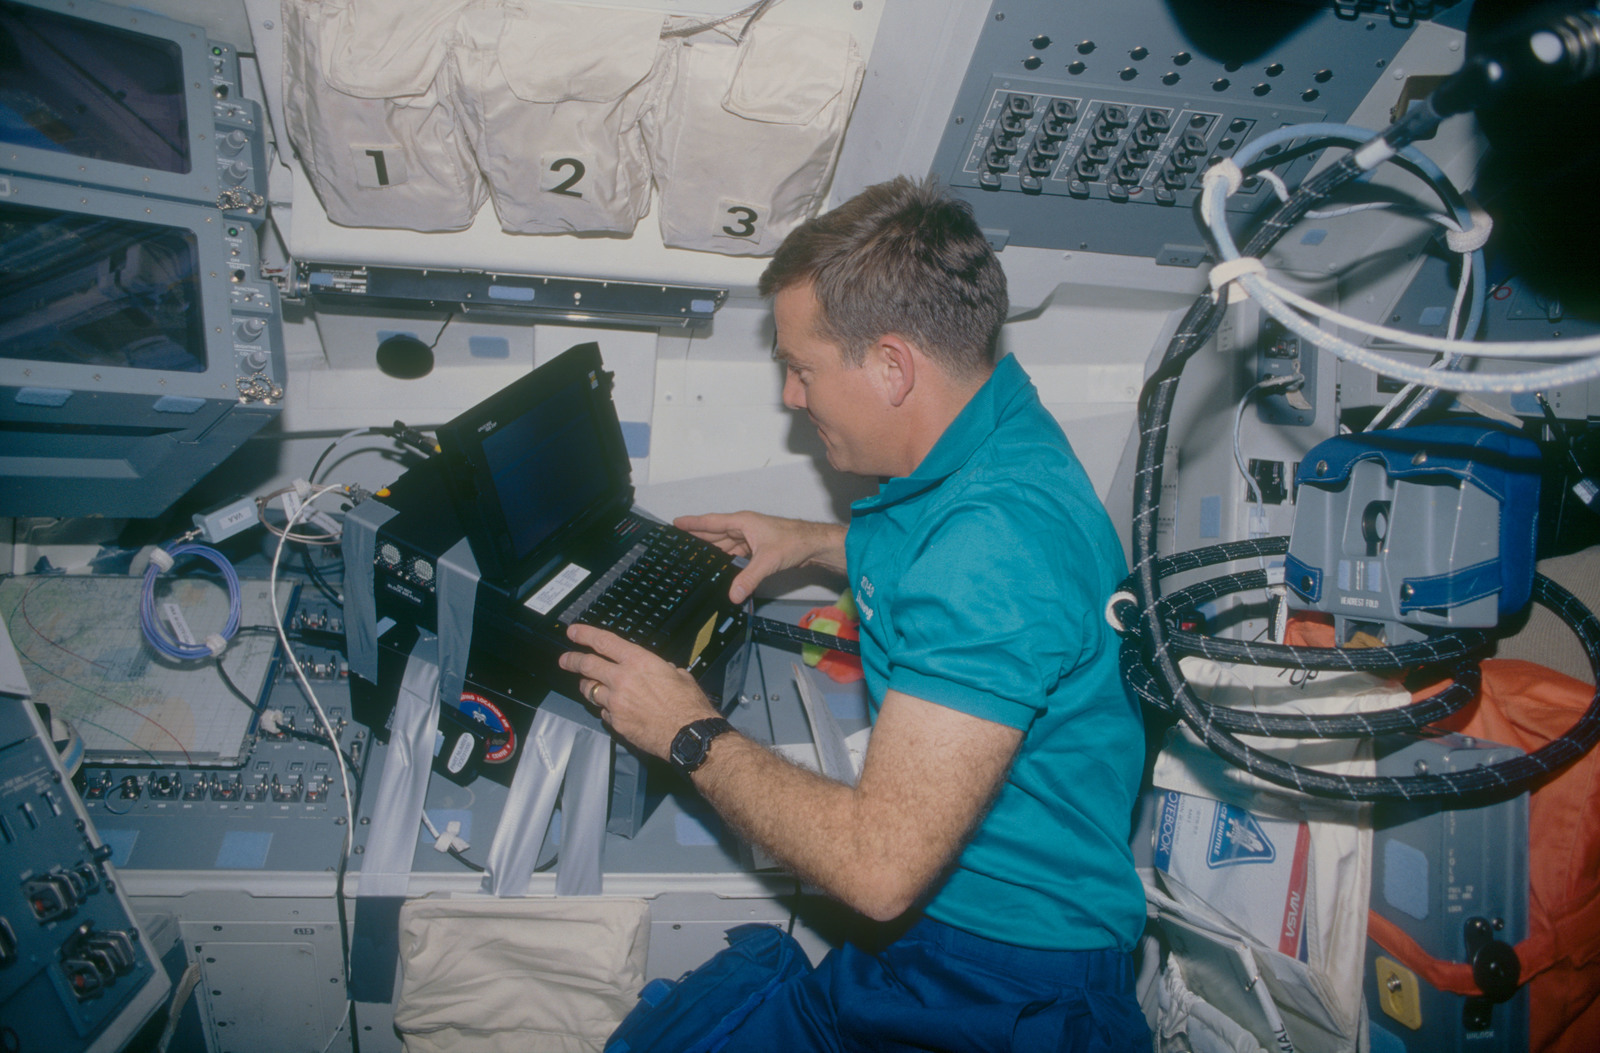 STS053-05-018 - STS-053 - Crewmember in the aft FD with laptop terminal